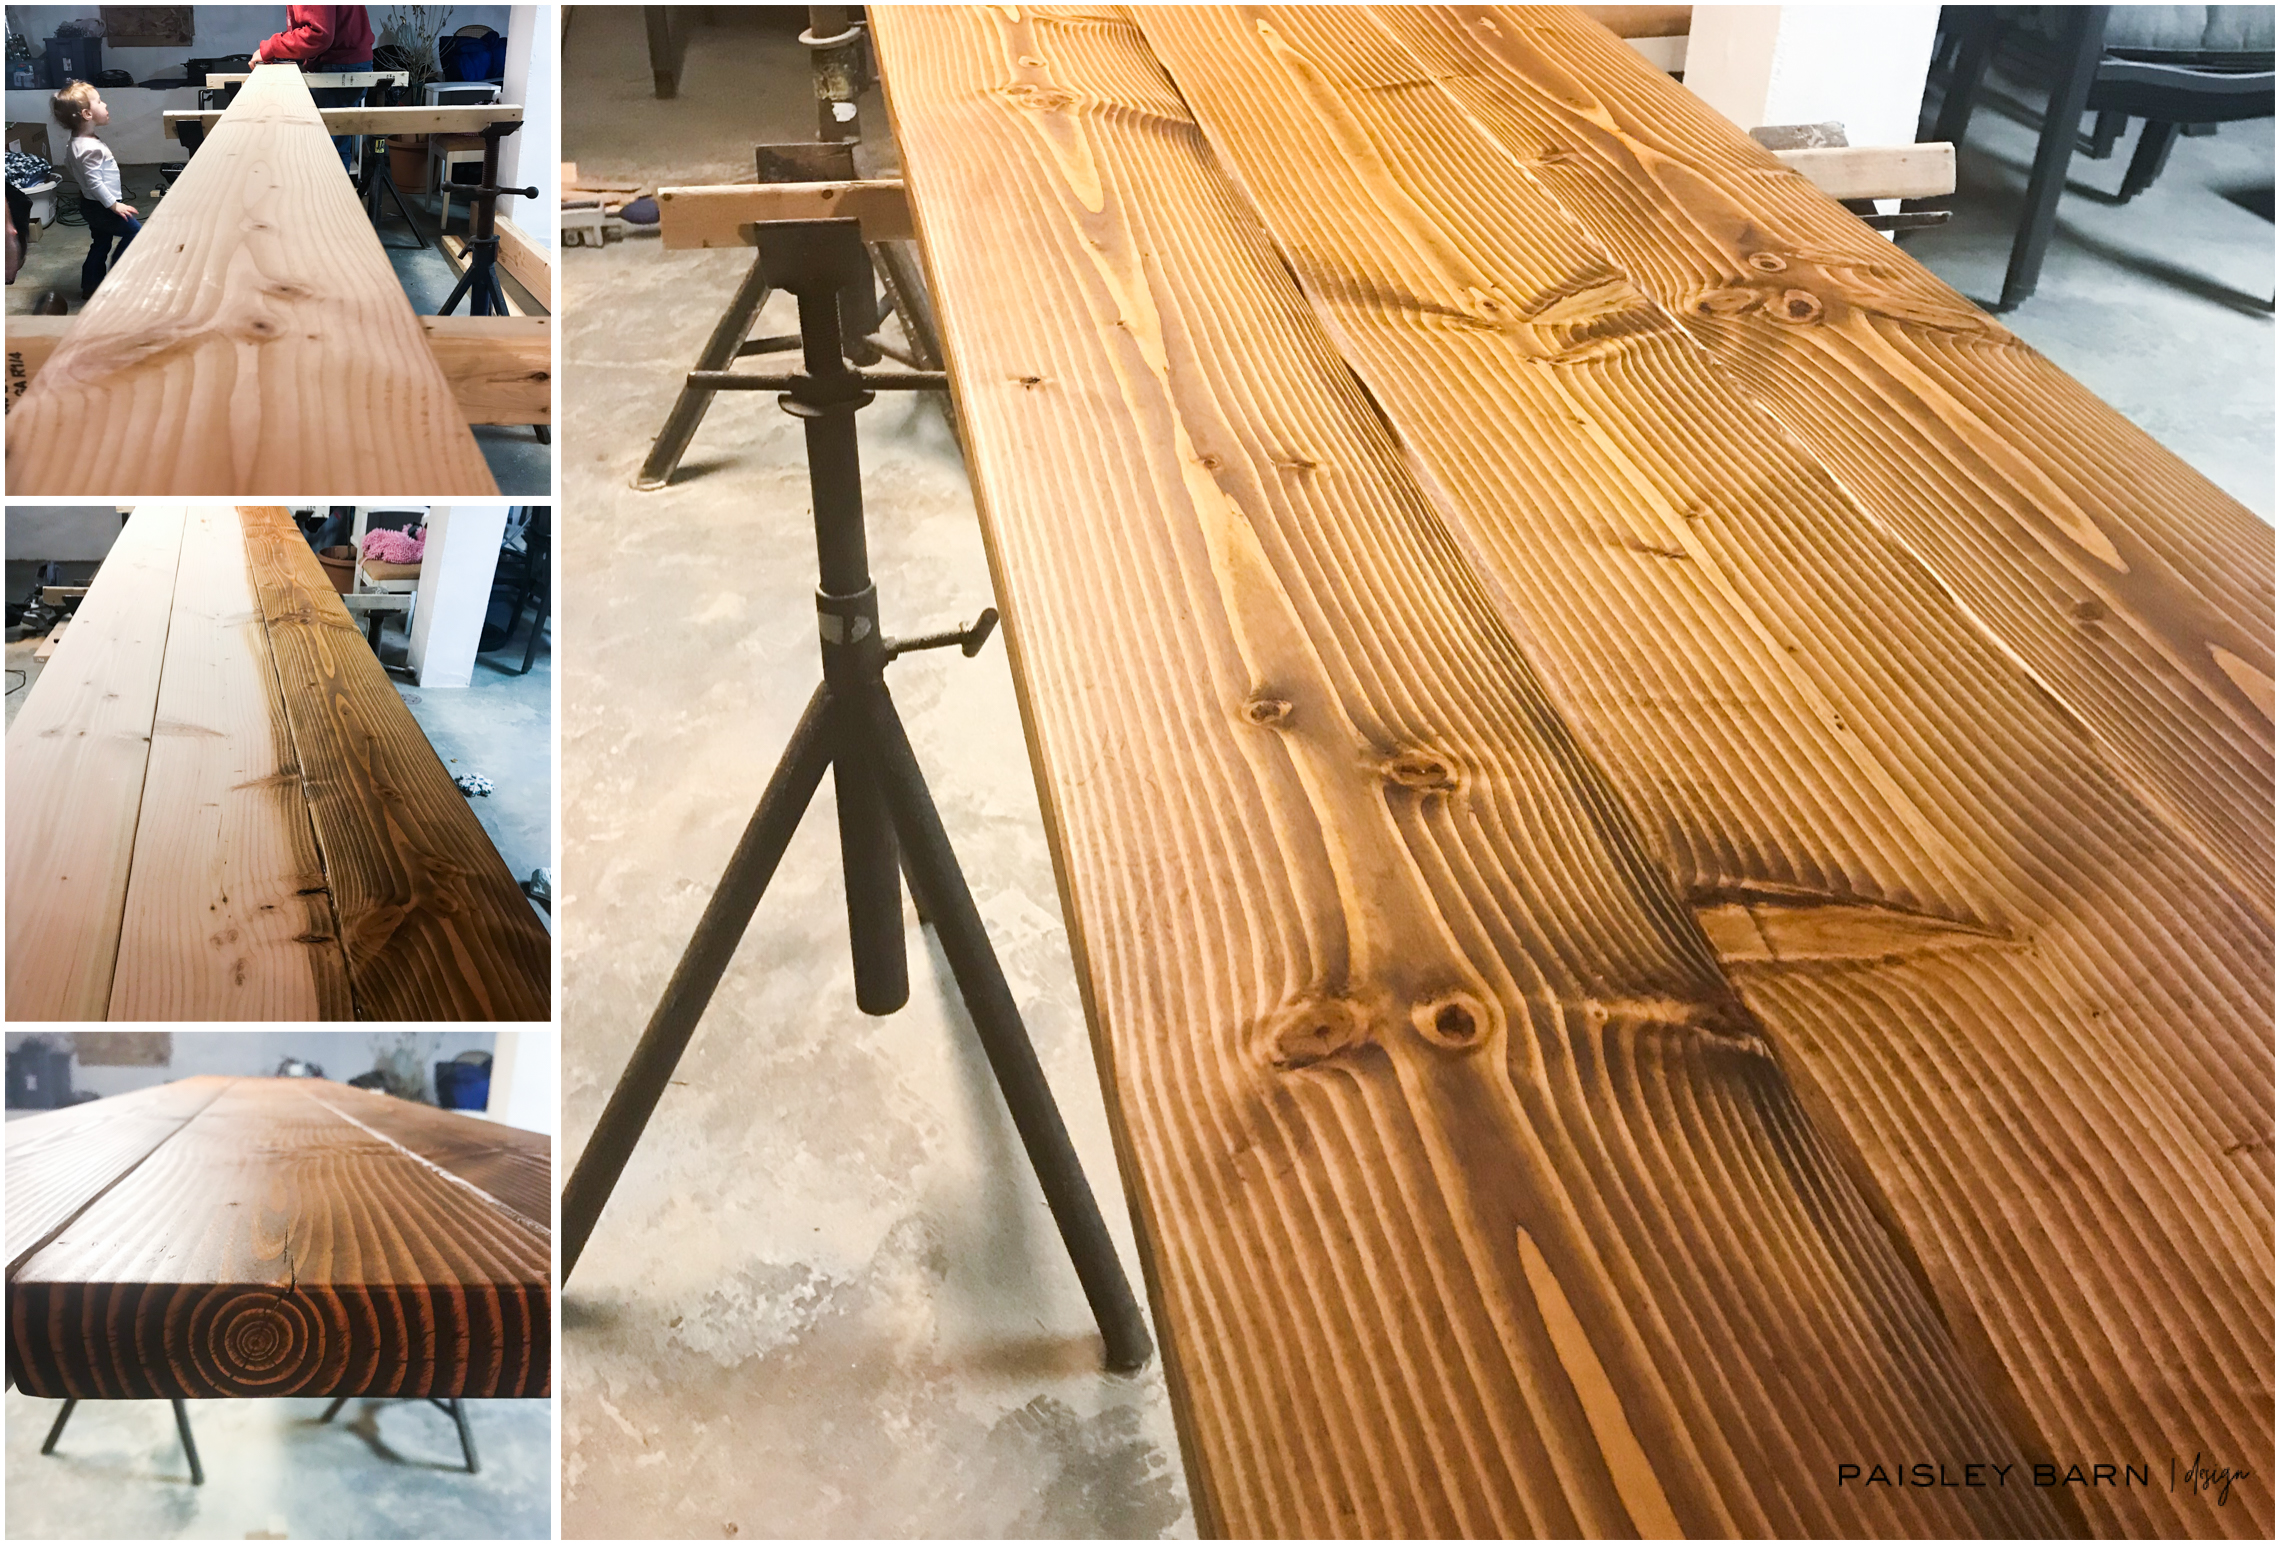 Staining and finishing the Douglas fir boards.